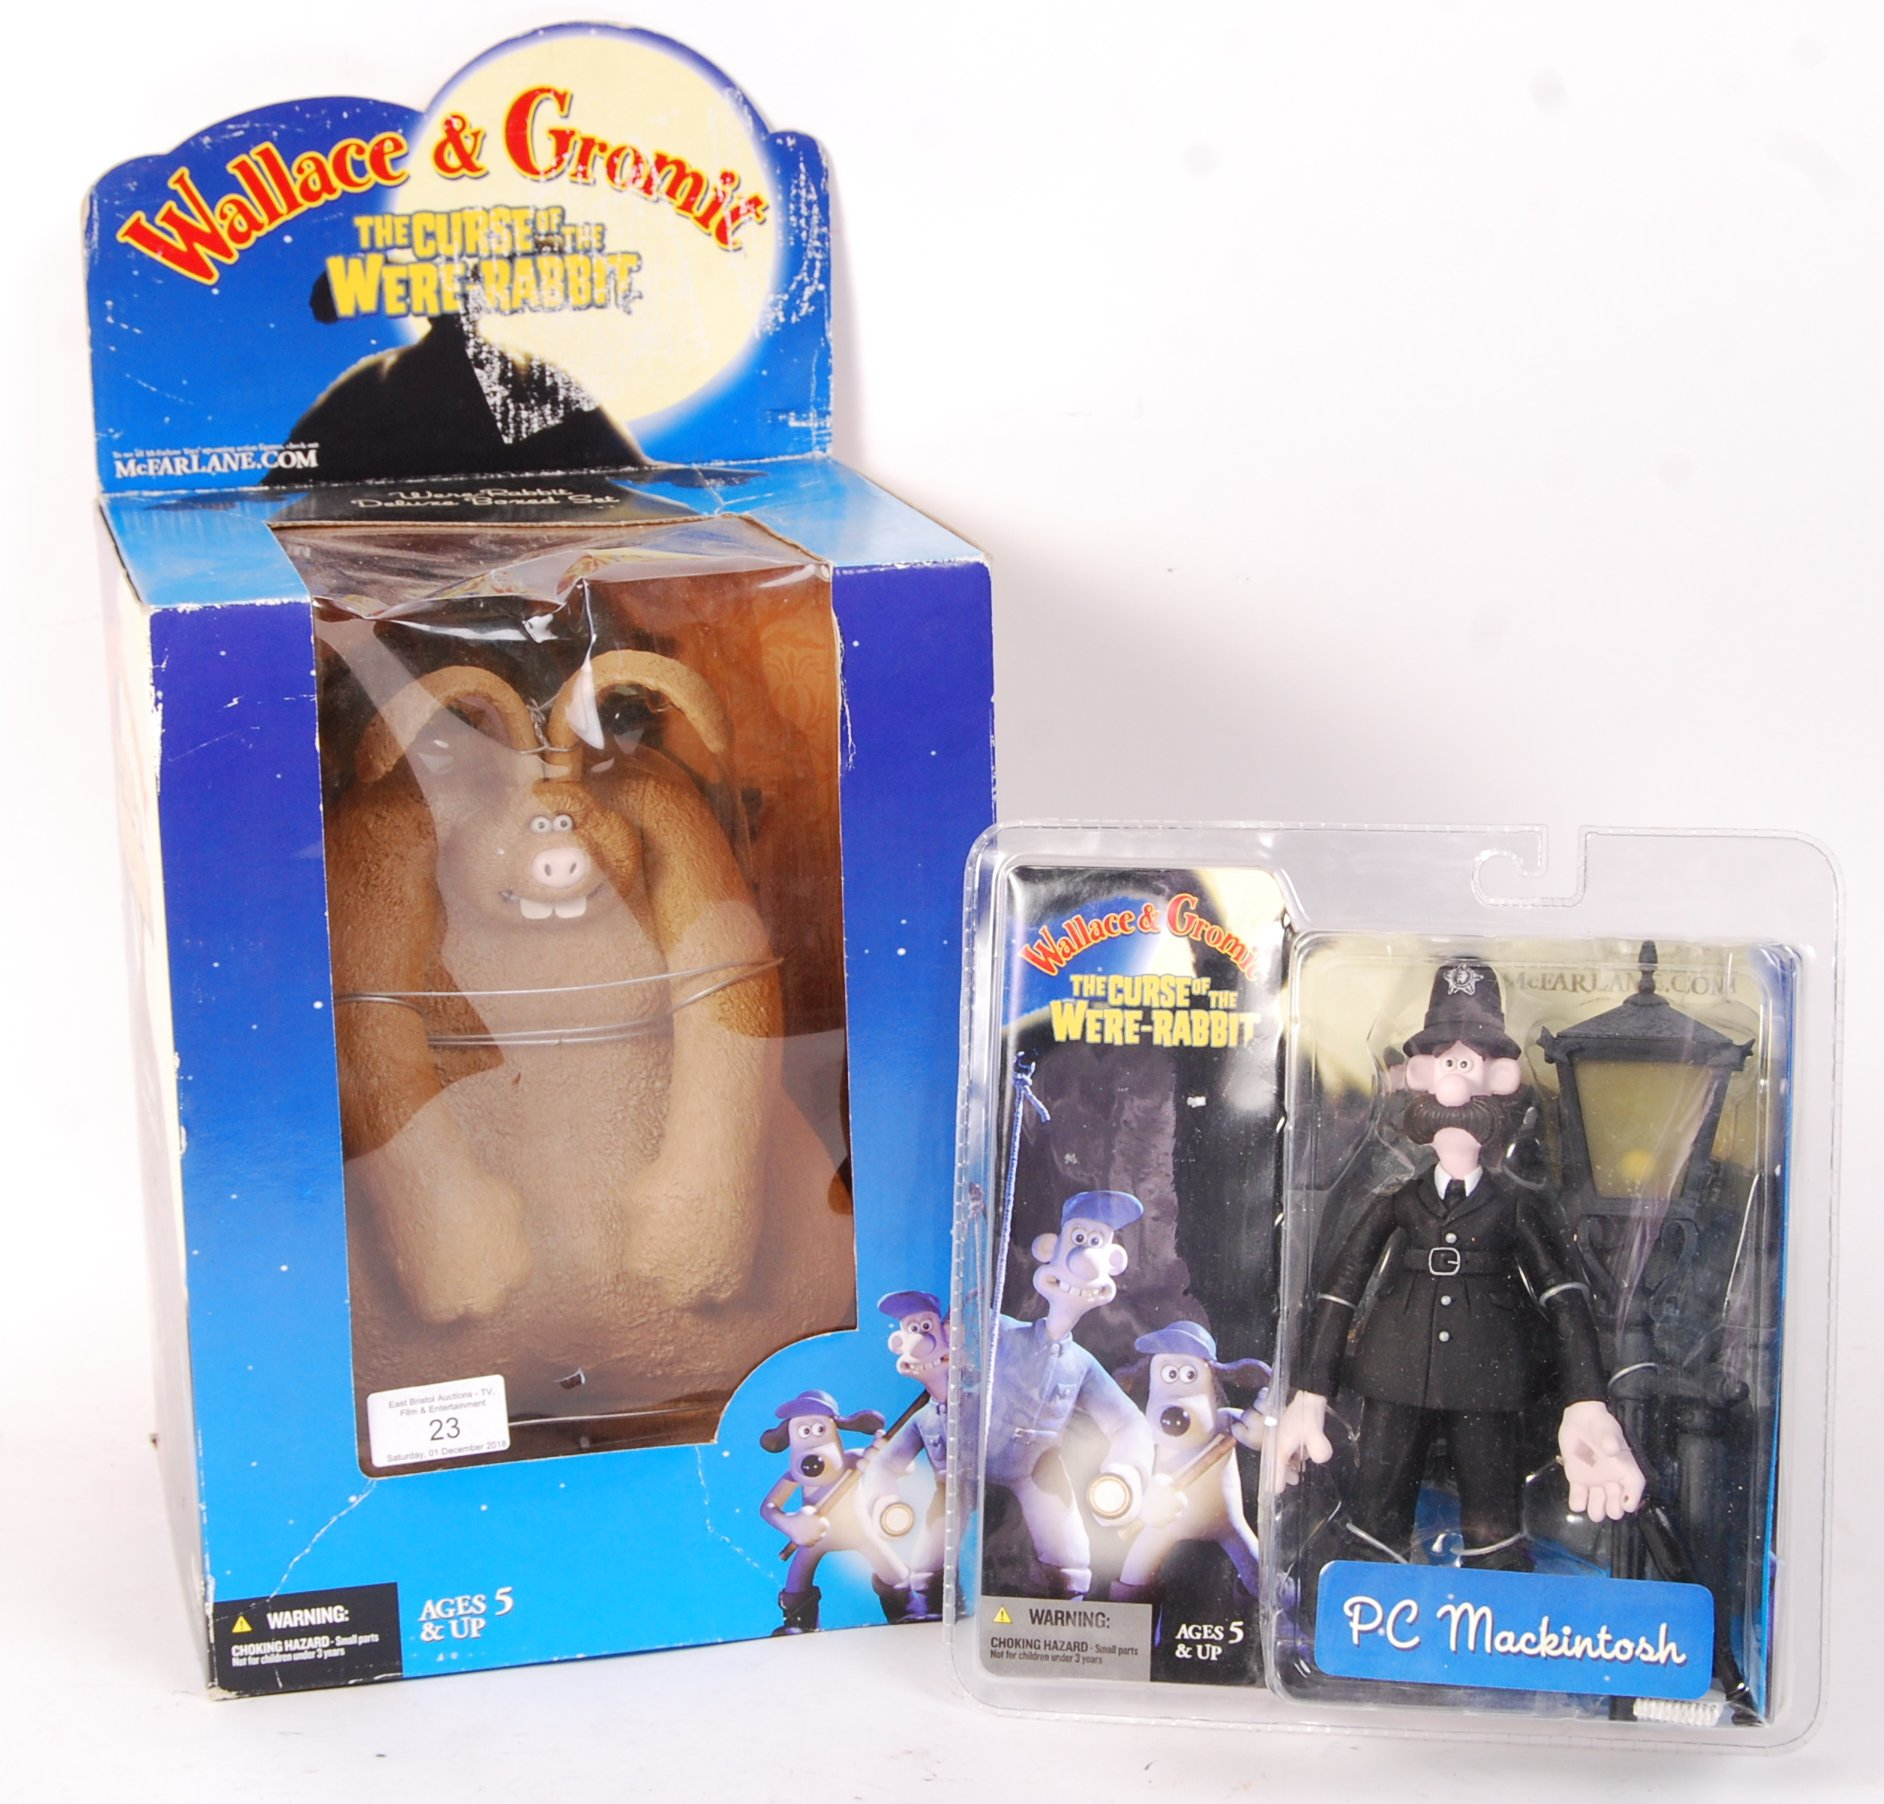 Lot 23 - WALLACE & GROMIT ' CURSE OF THE WERE-RABBIT ACTION FIGURES